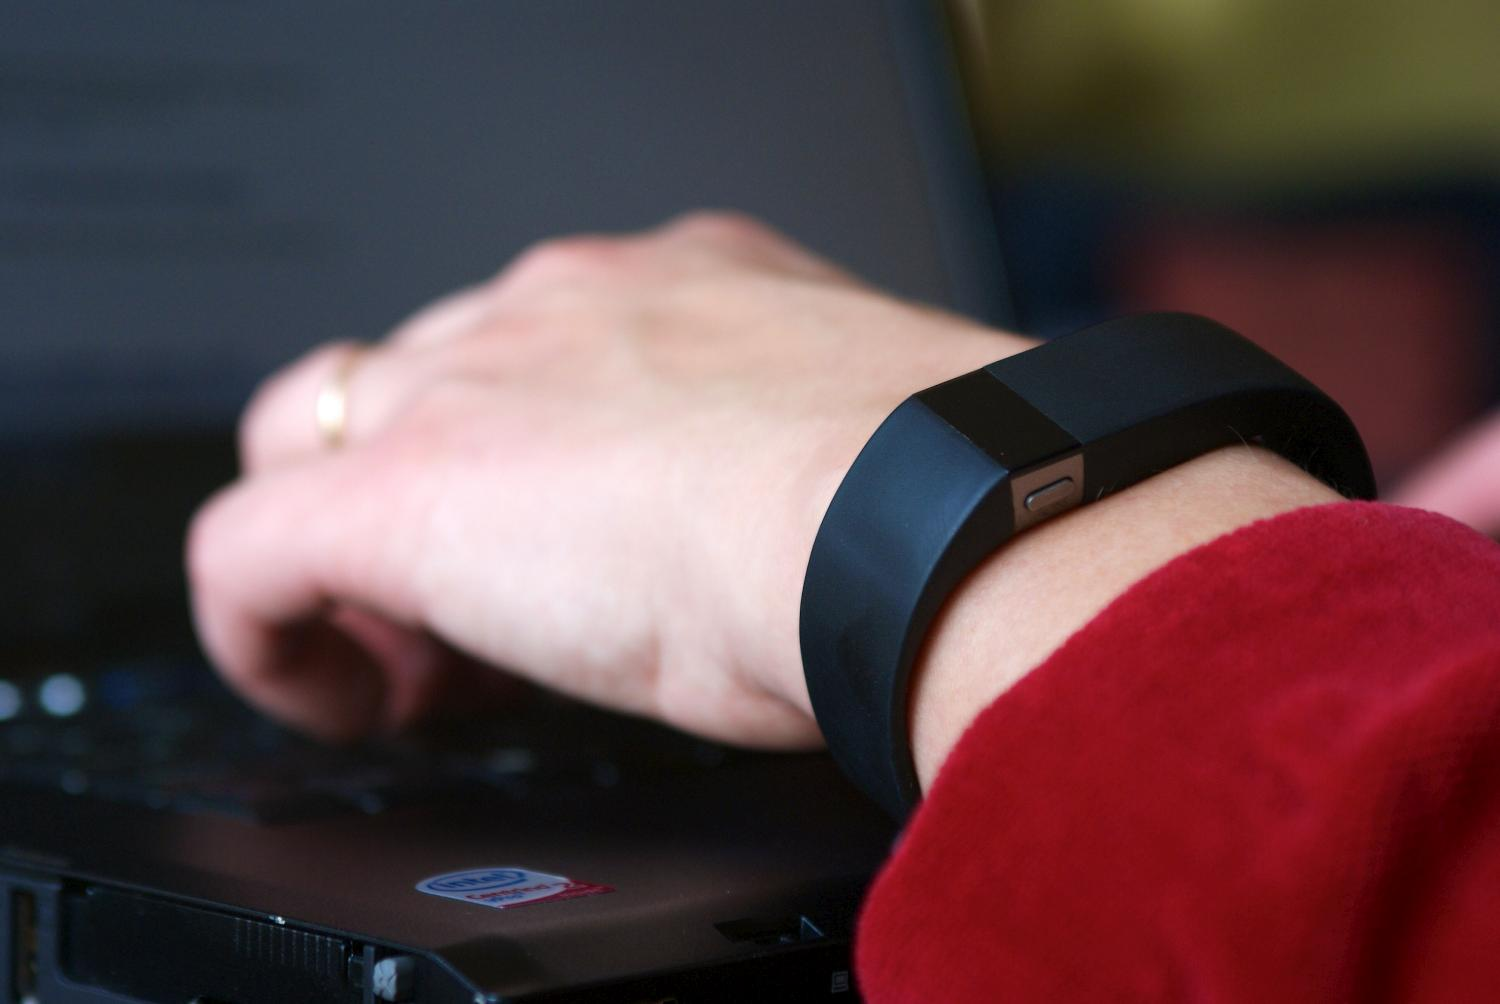 A person wearing a Fitbit fitness band types on a laptop